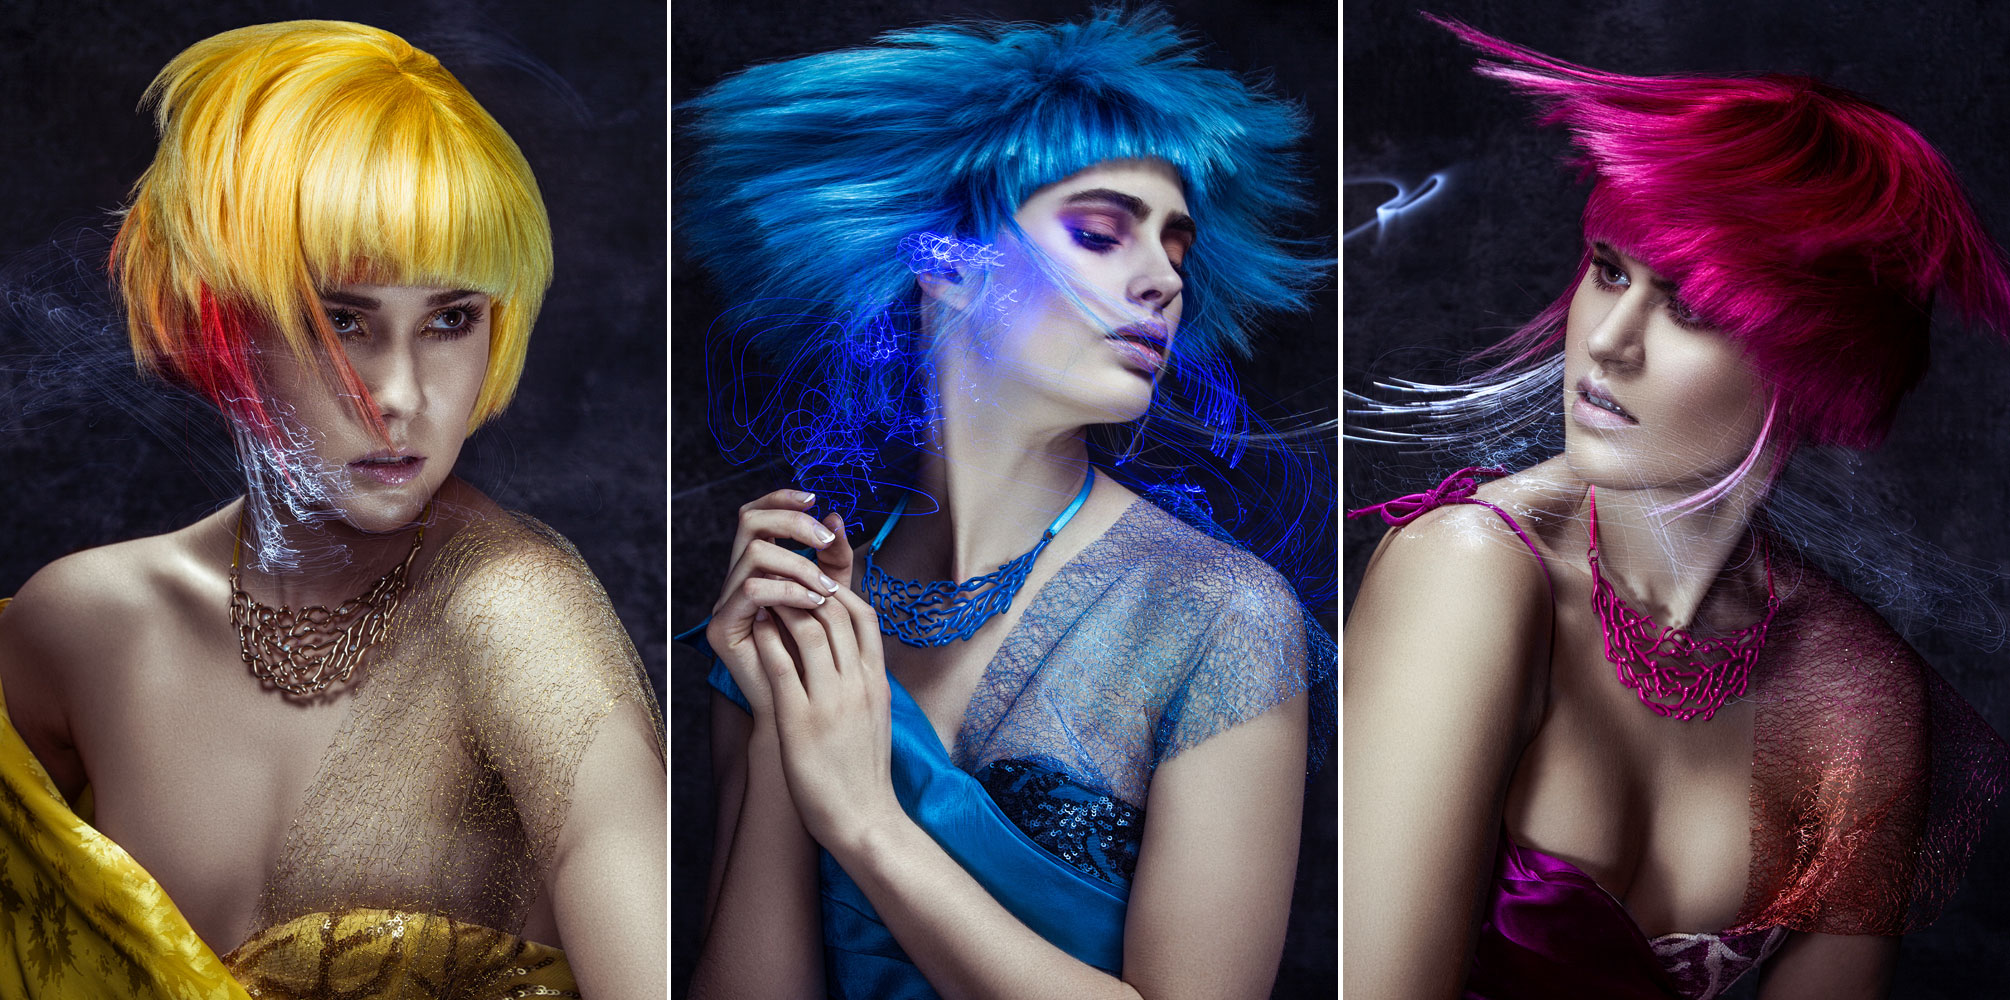 Deep Blue Sea Collection by Charles Robinson Captures Light and Movement